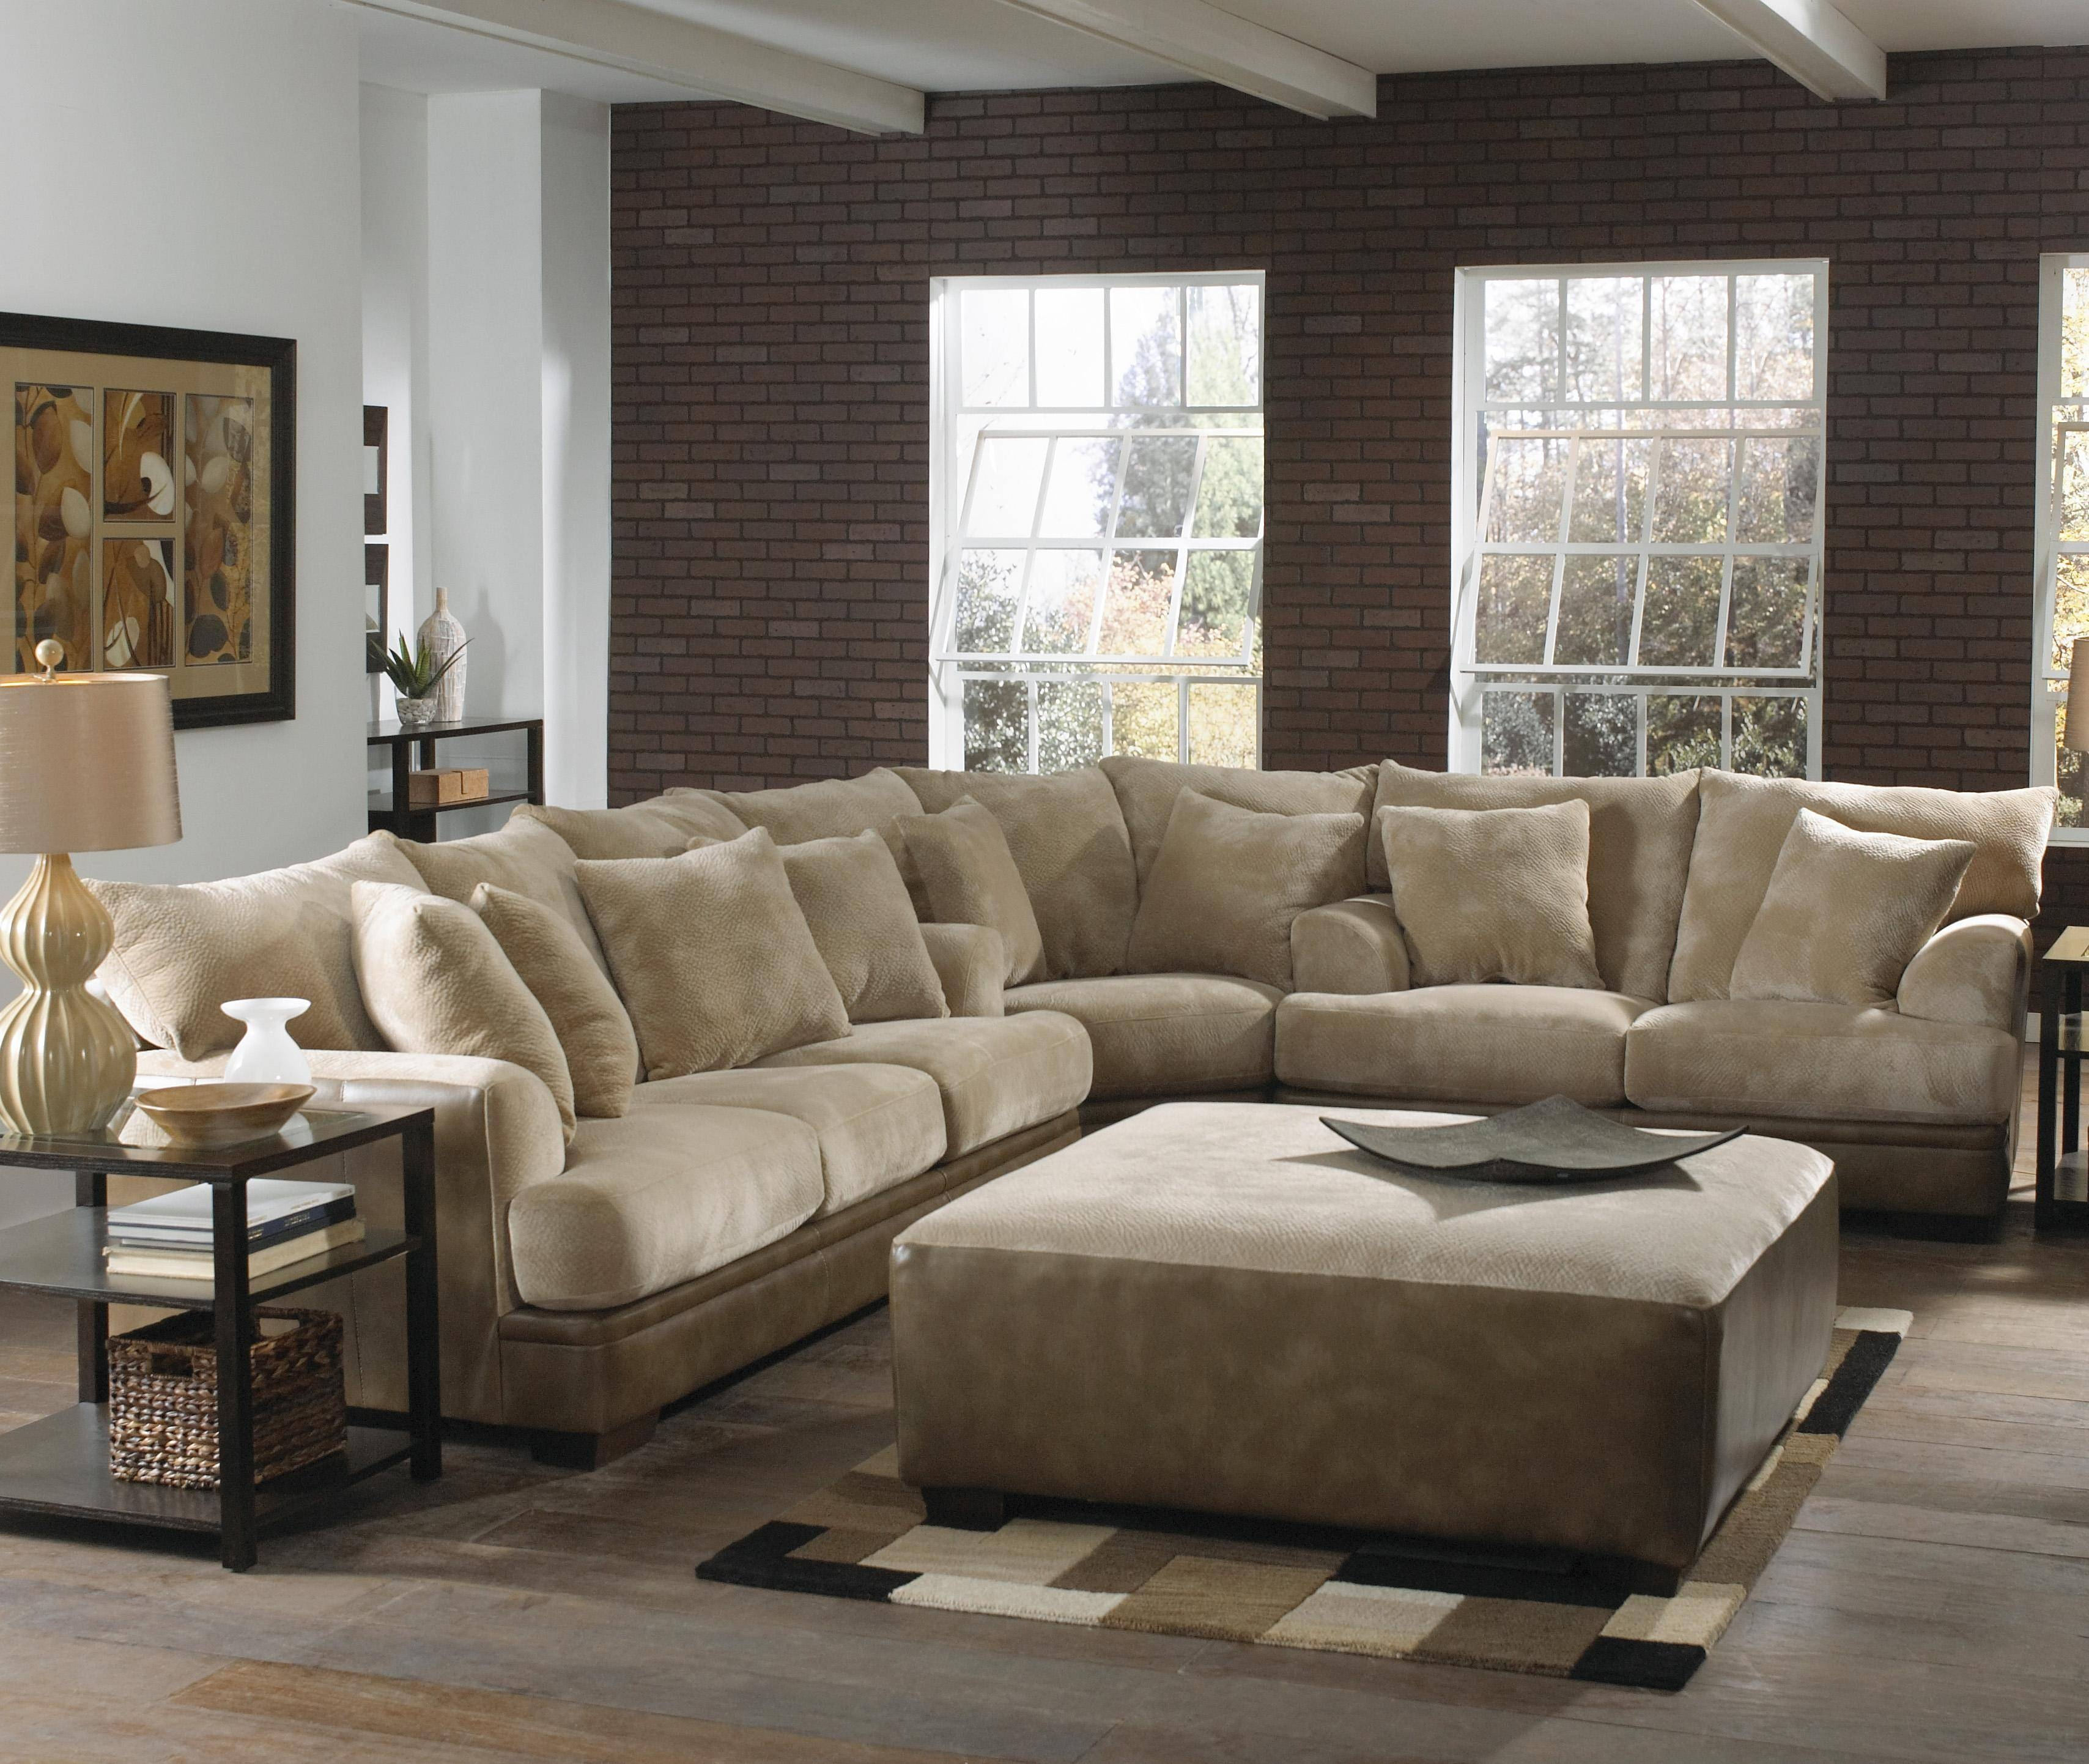 Furniture: Interesting Living Room Interior Using Large Sectional with regard to Comfy Sectional Sofa (Image 17 of 30)